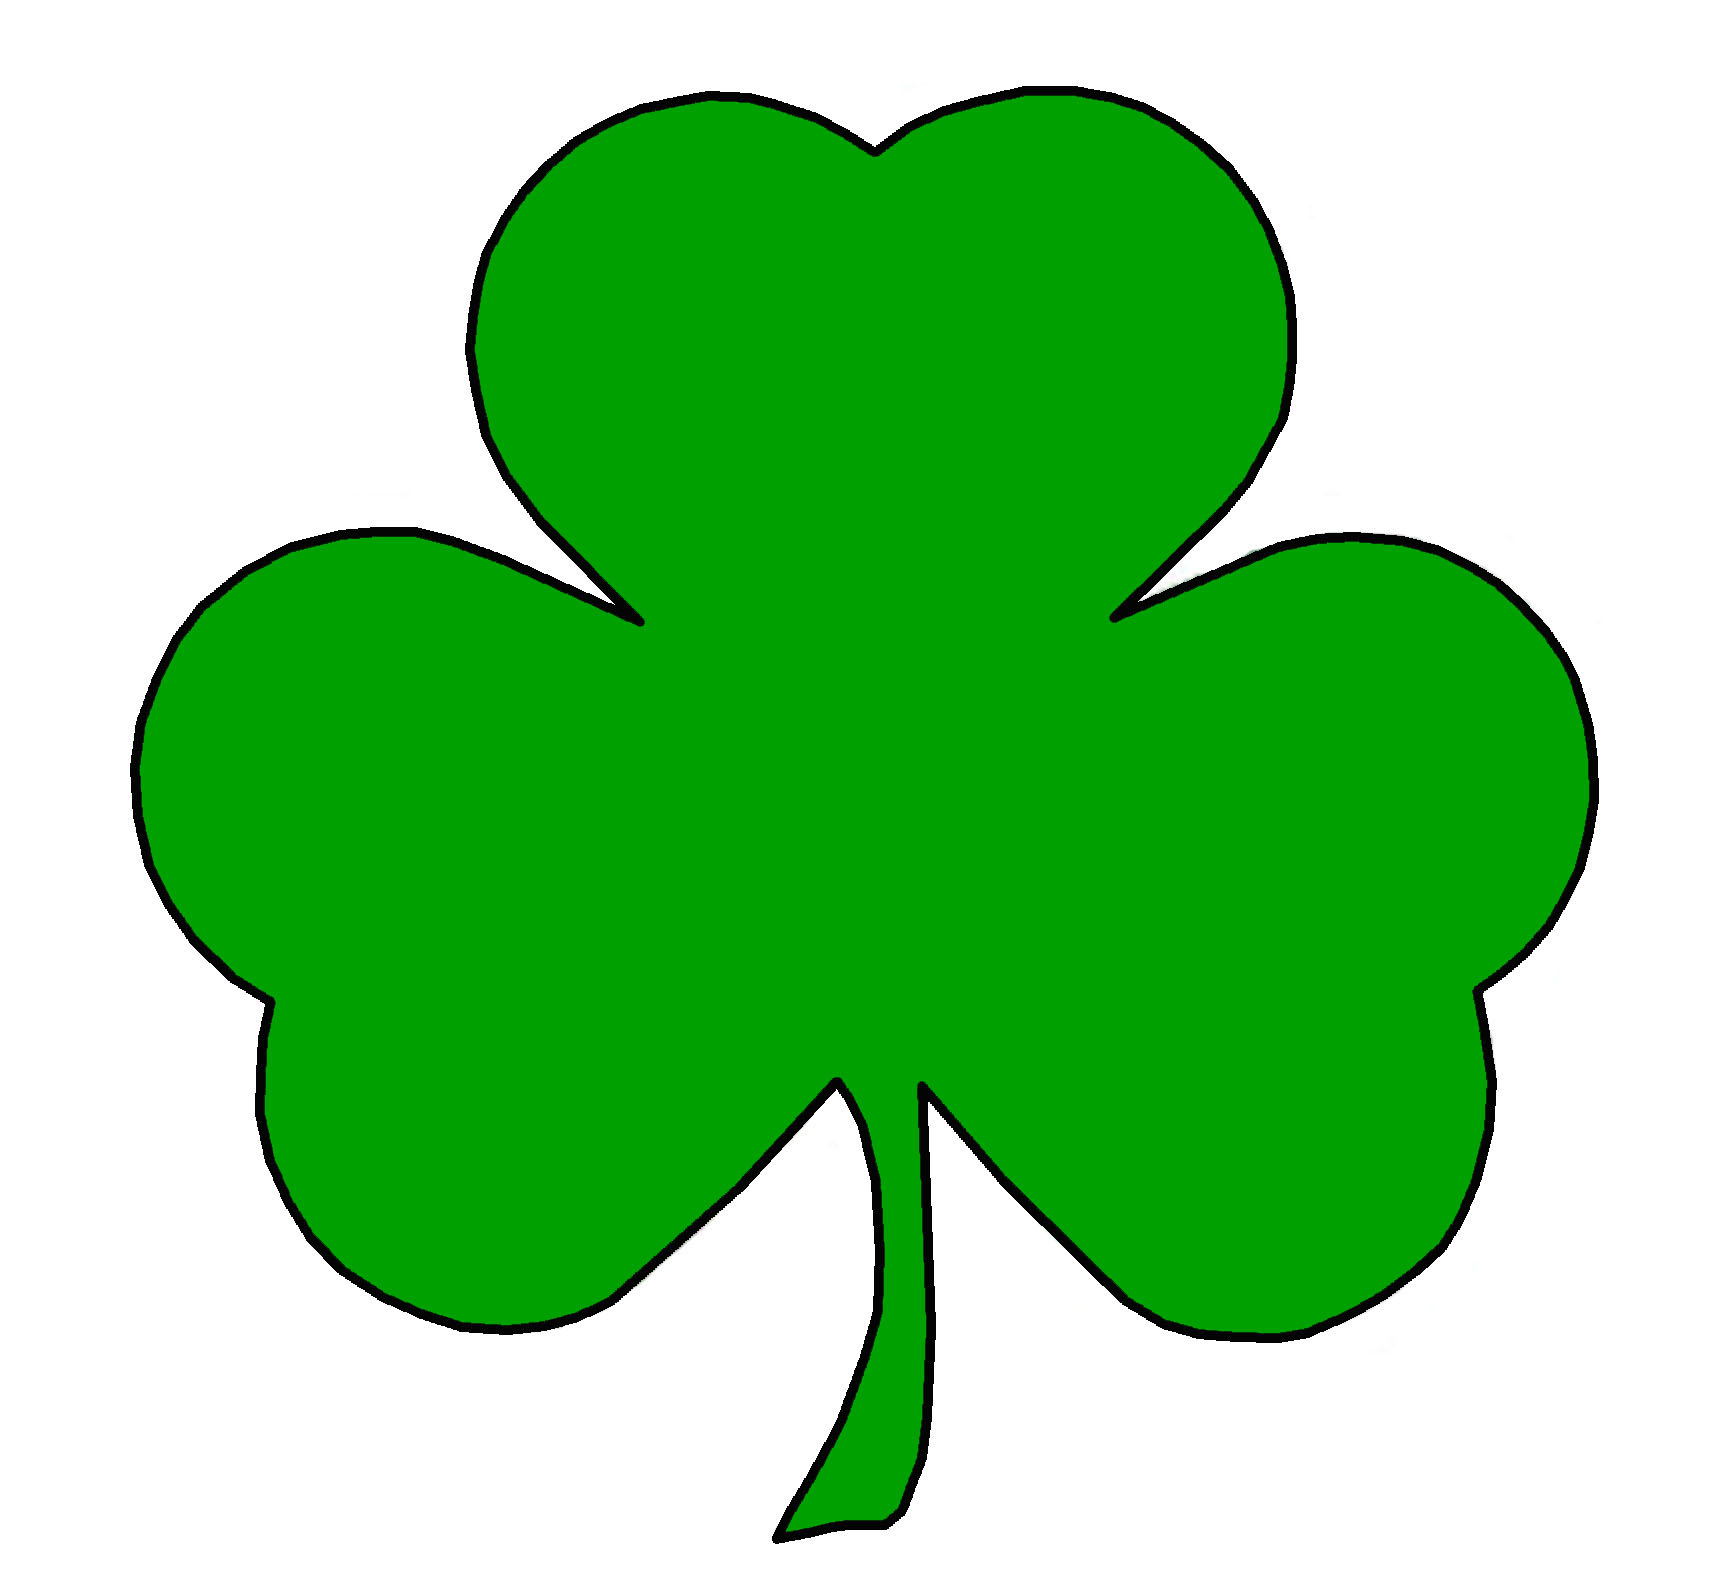 Free Shamrock Outline, Download Free Clip Art, Free Clip Art on.